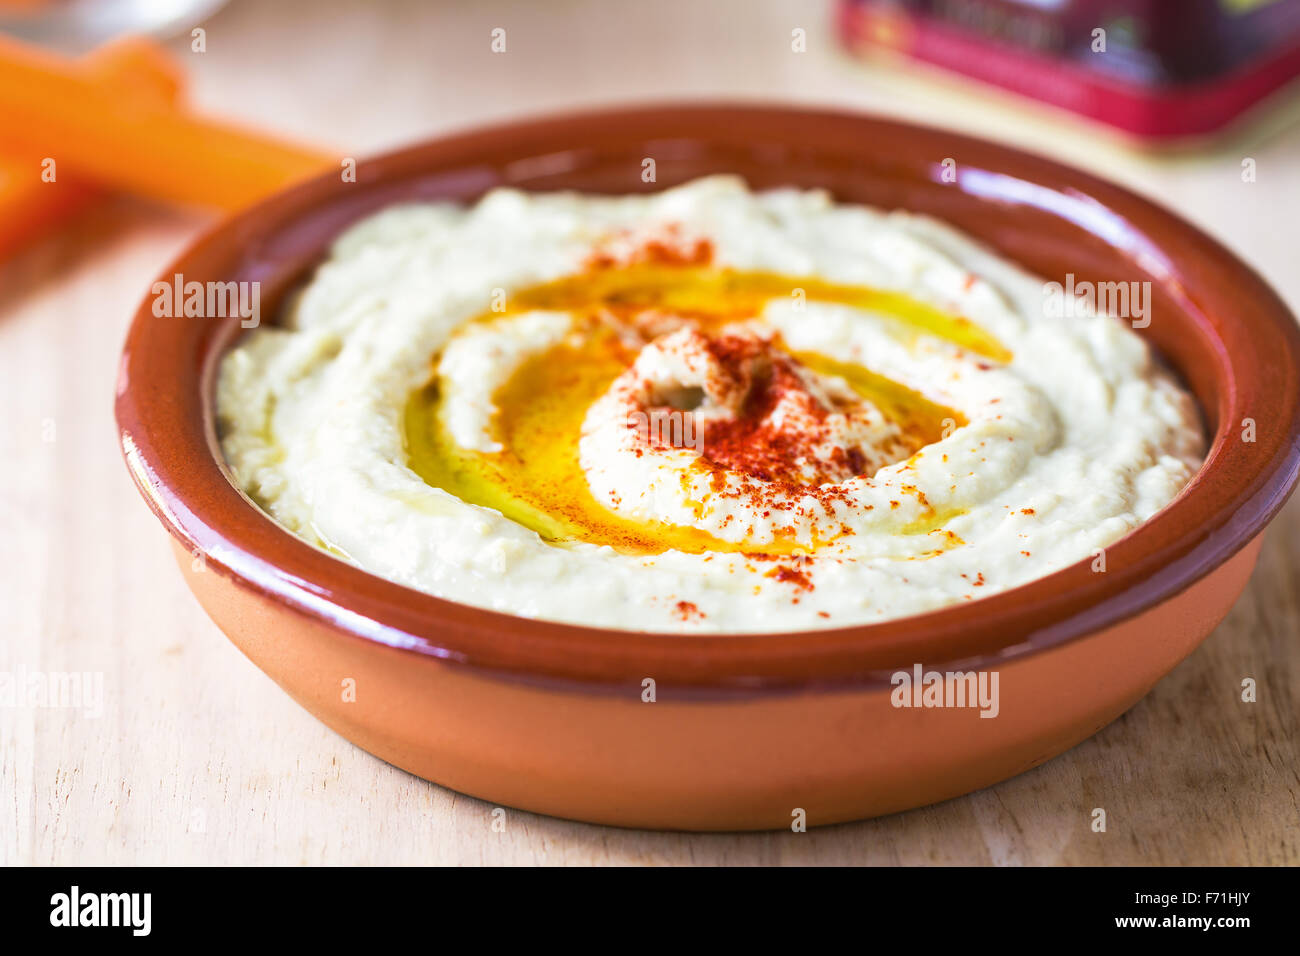 Homemade Hummus by some carrot sticks - Stock Image